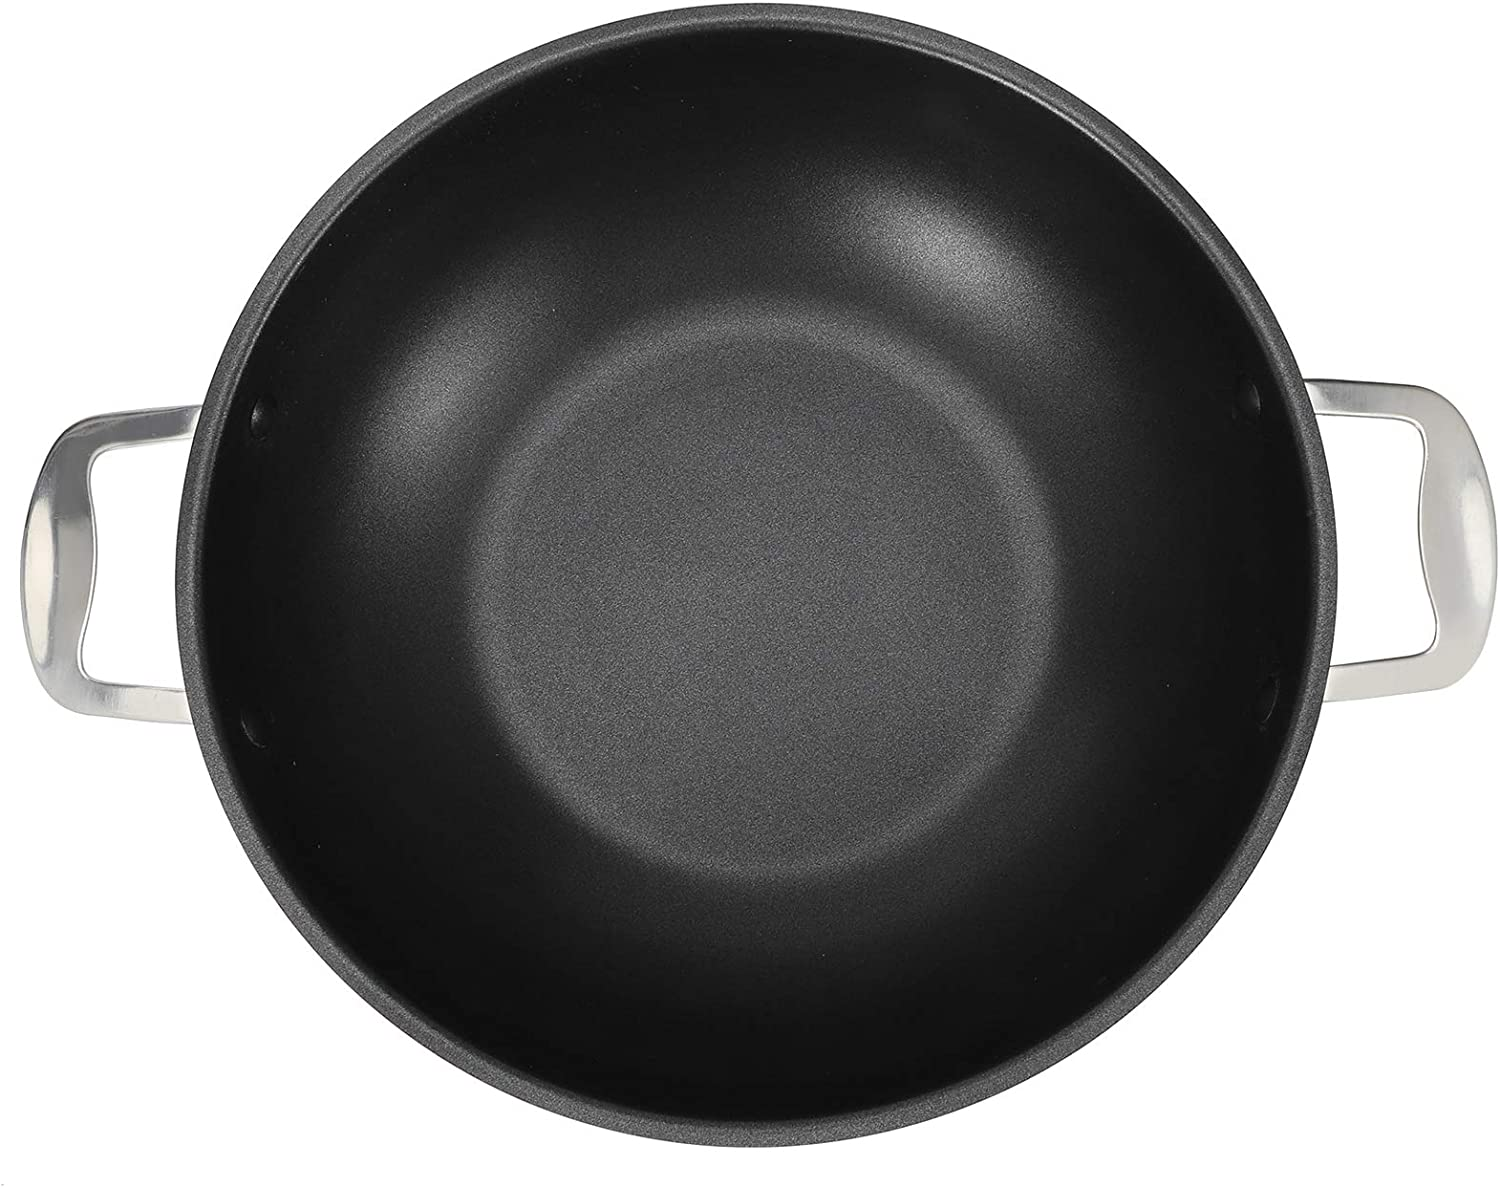 Non Stick Frying Pans, Composite Food Grade Stainless Steel Cooking Pan without Cover, Frying Pans with 3 Helper Handles for Induction Cooktop, Gas Stove, Ceramic Cookers (300x95mm)